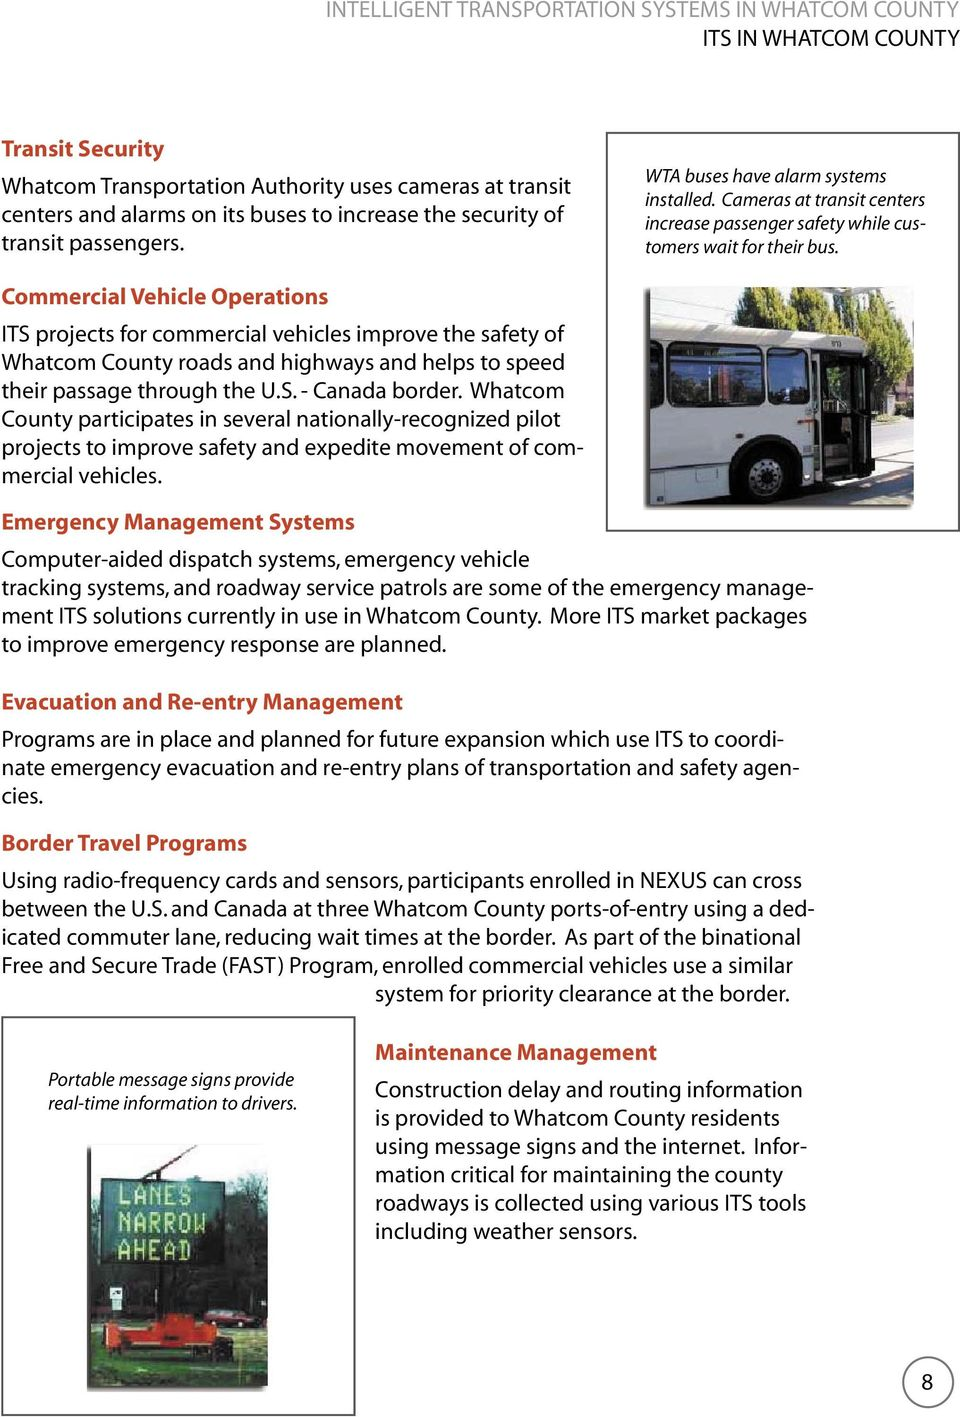 Commercial Vehicle Operations ITS projects for commercial vehicles improve the safety of Whatcom County roads and highways and helps to speed their passage through the U.S. - Canada border.